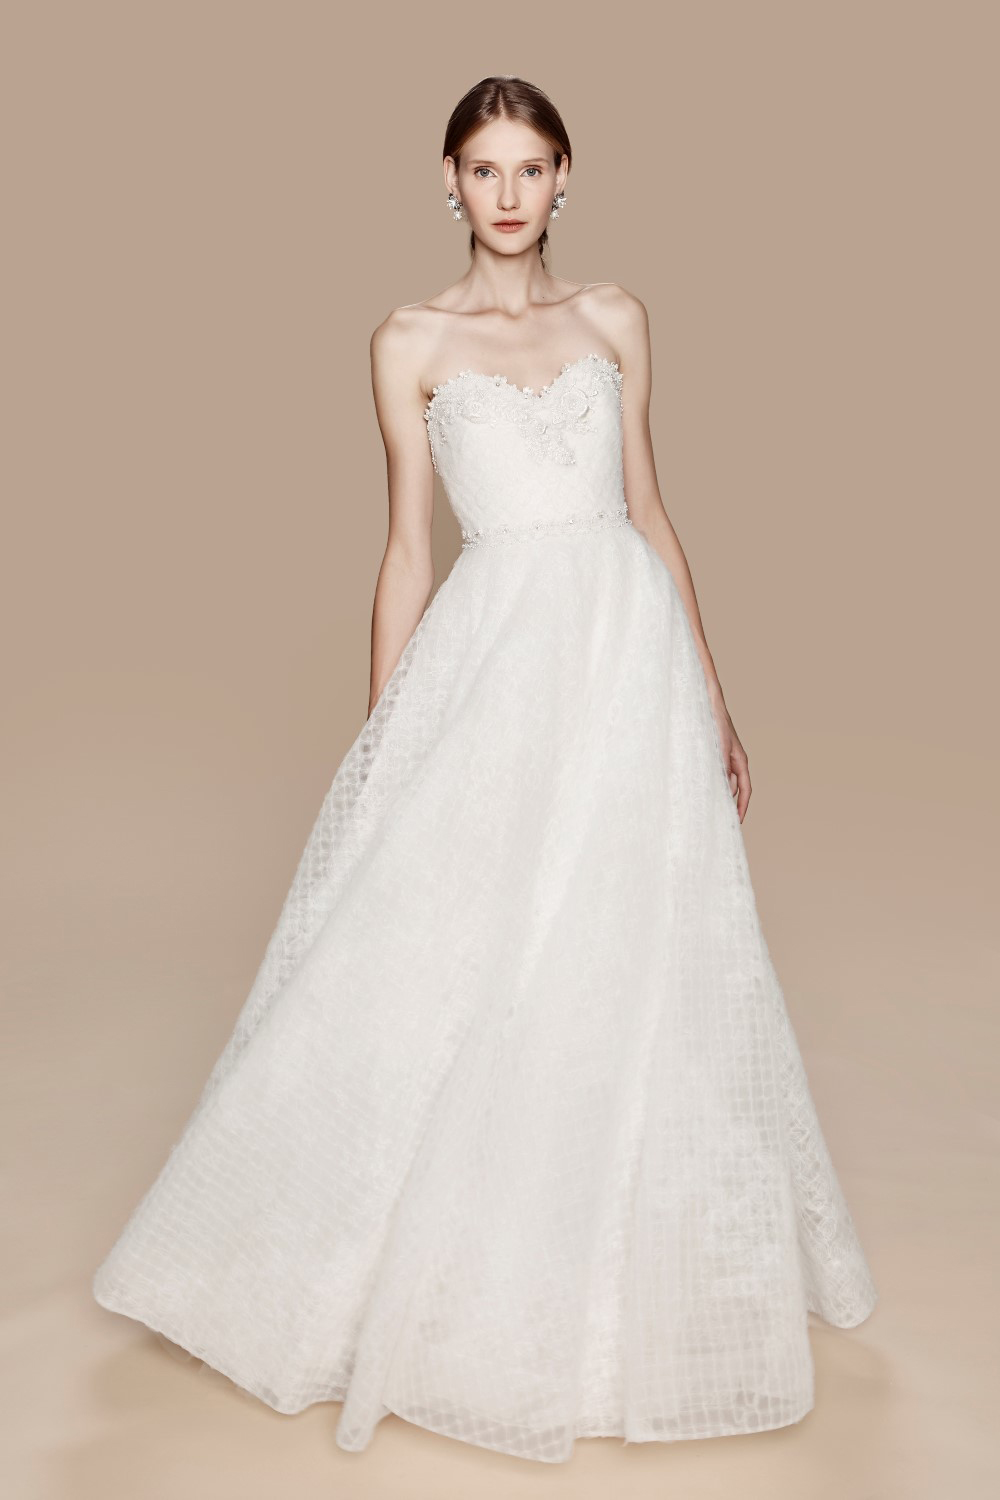 Marchesa Notte Fall 2017 Bridal Collection. www.theweddingnotebook.com